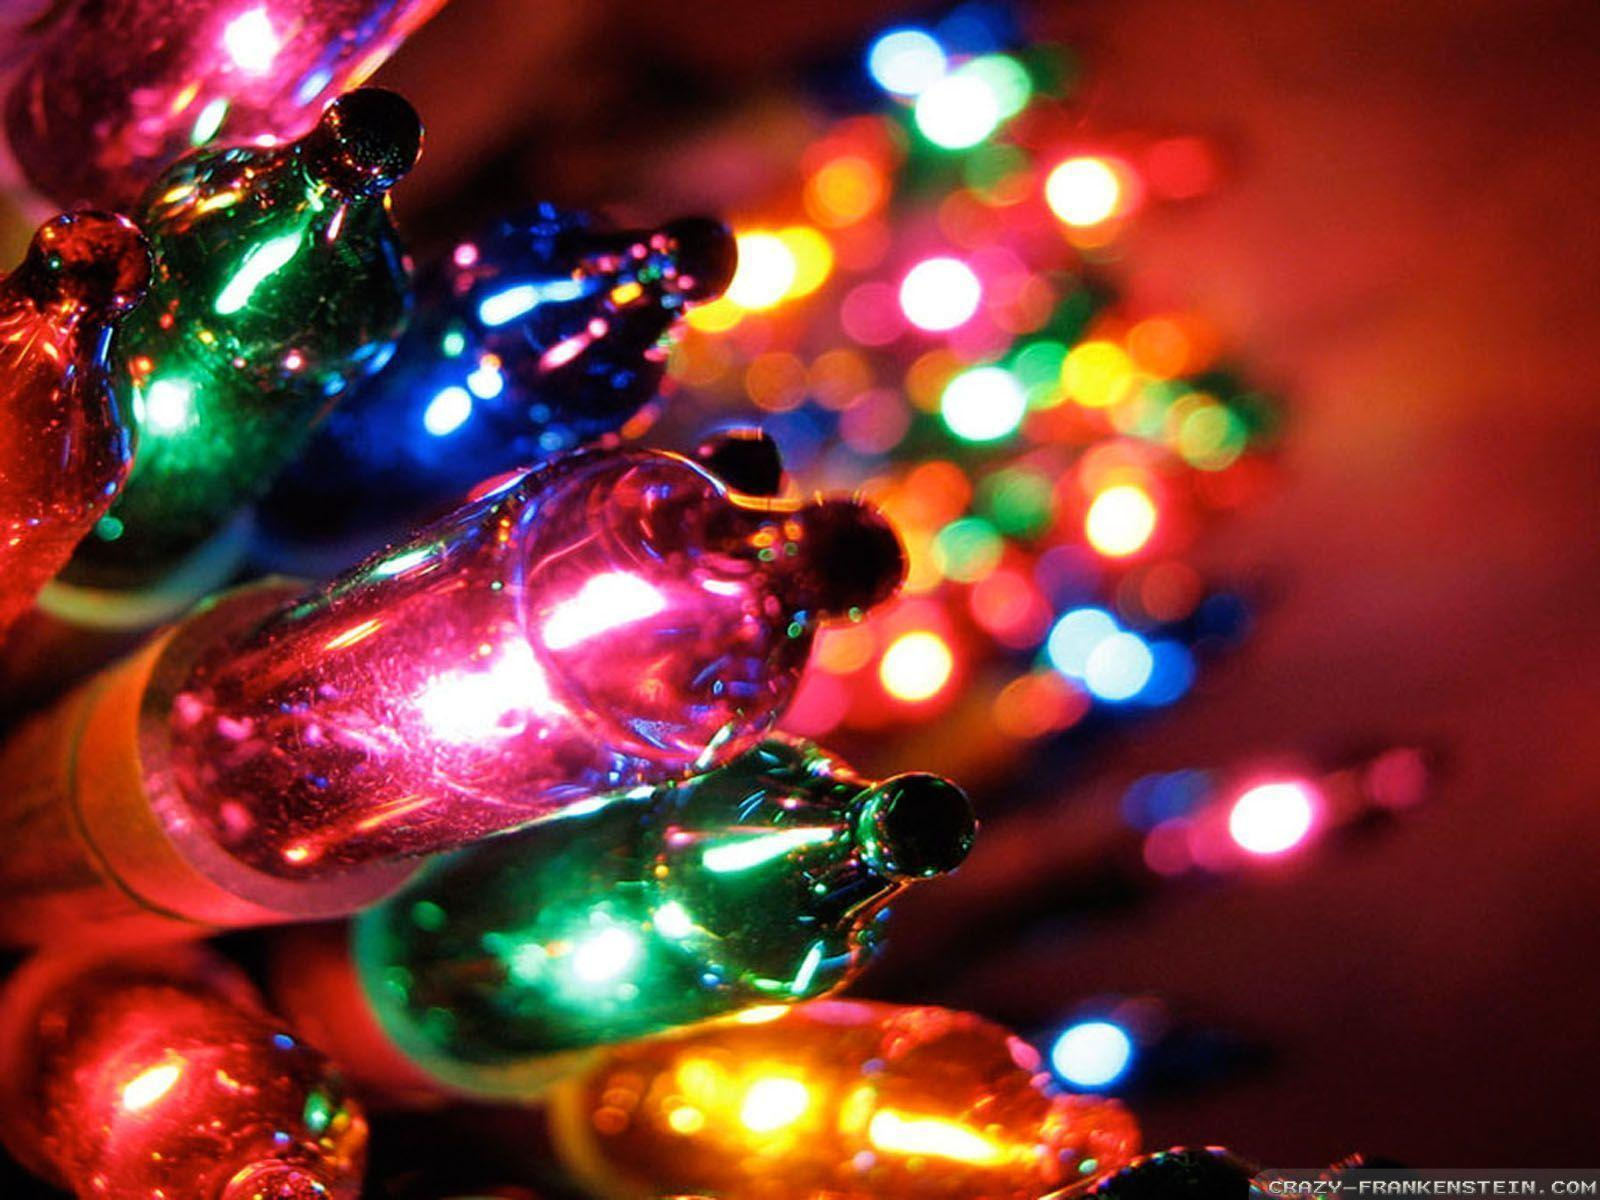 Christmas Lights Wallpaper : Christmas Lights Wallpapers - Wallpaper Cave